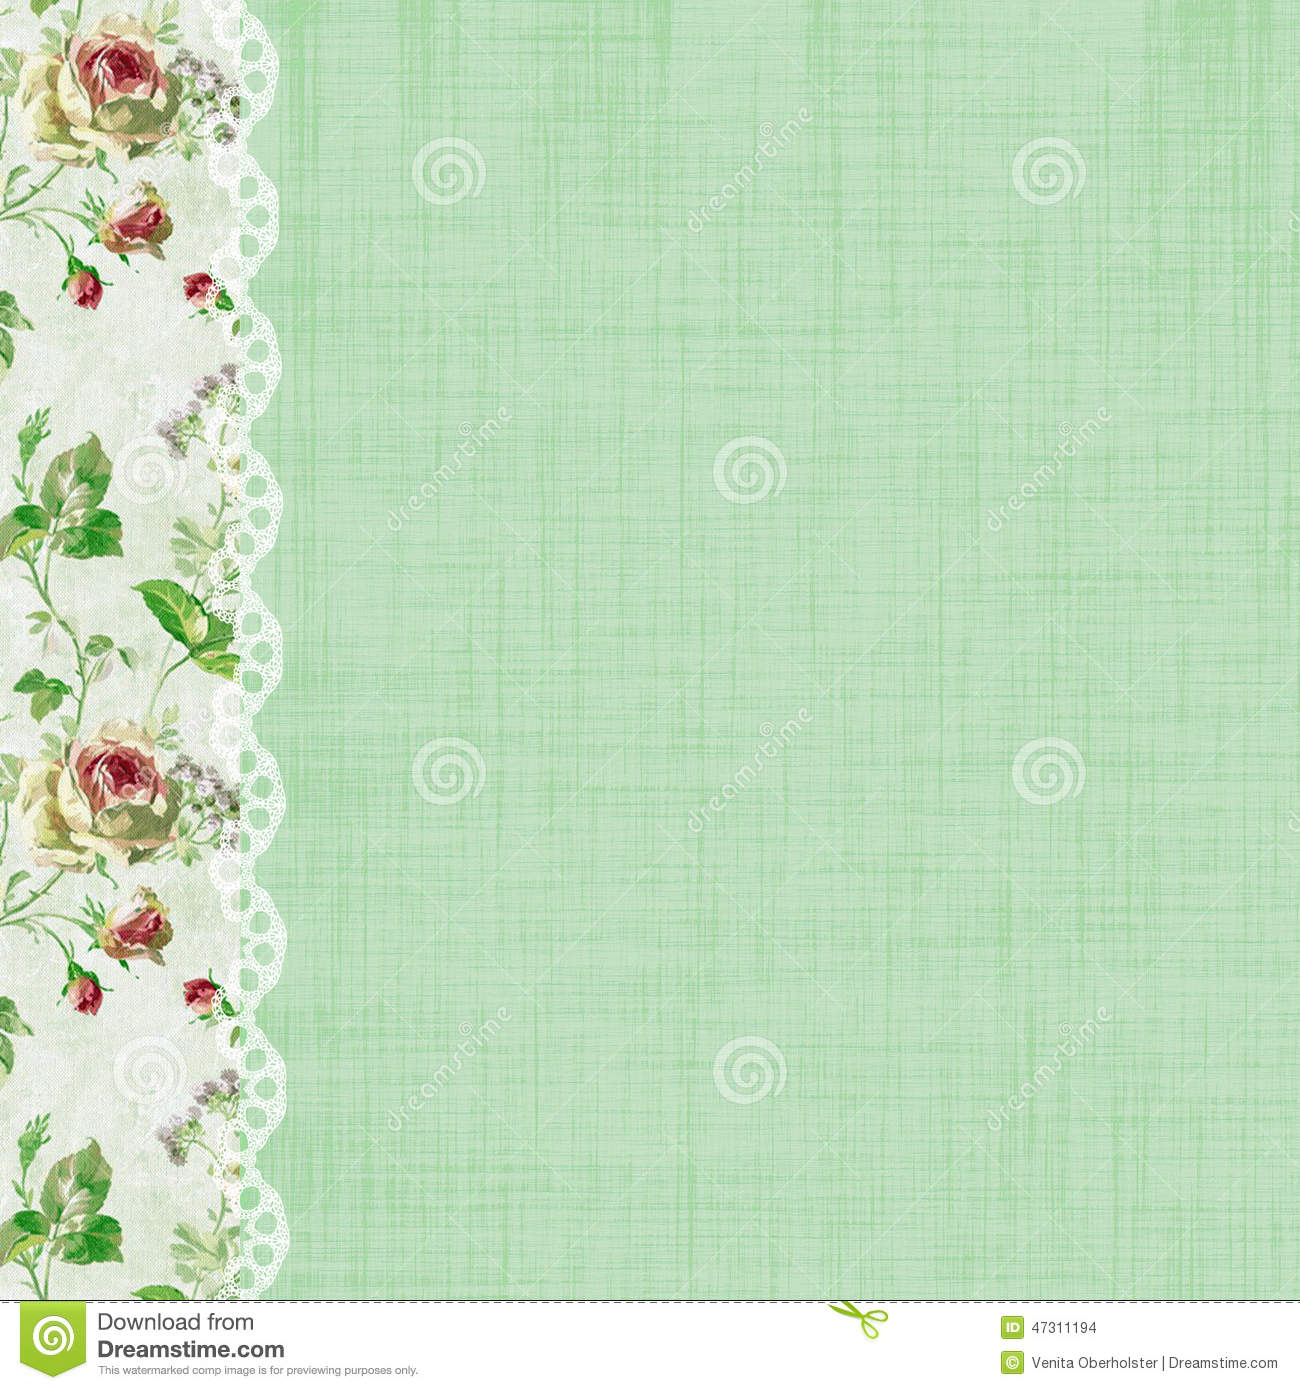 Green Scrapbook Backgrounds